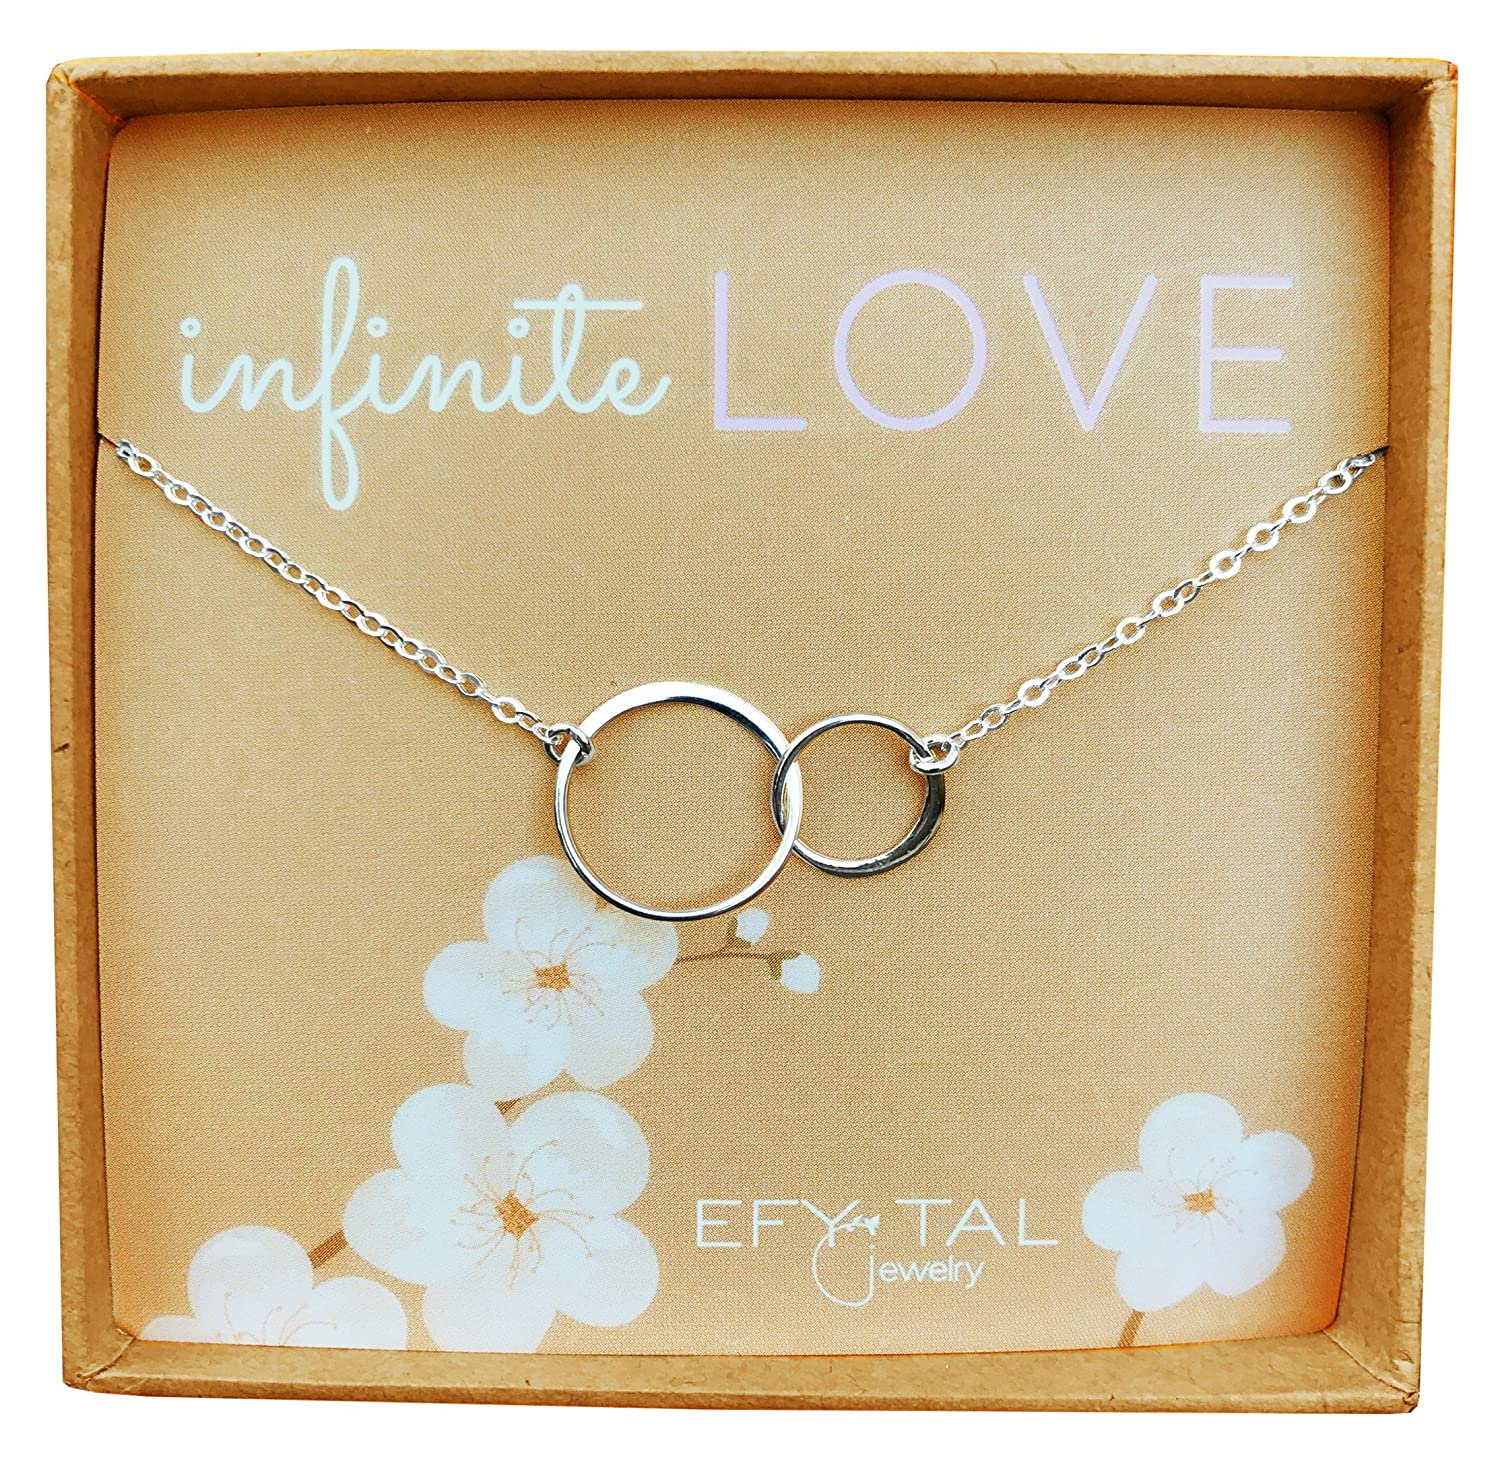 Sterling Silver 'Infinite Love' Necklace, Efy Tal Jewelry Interlocking Double Circles Anniversary Gift